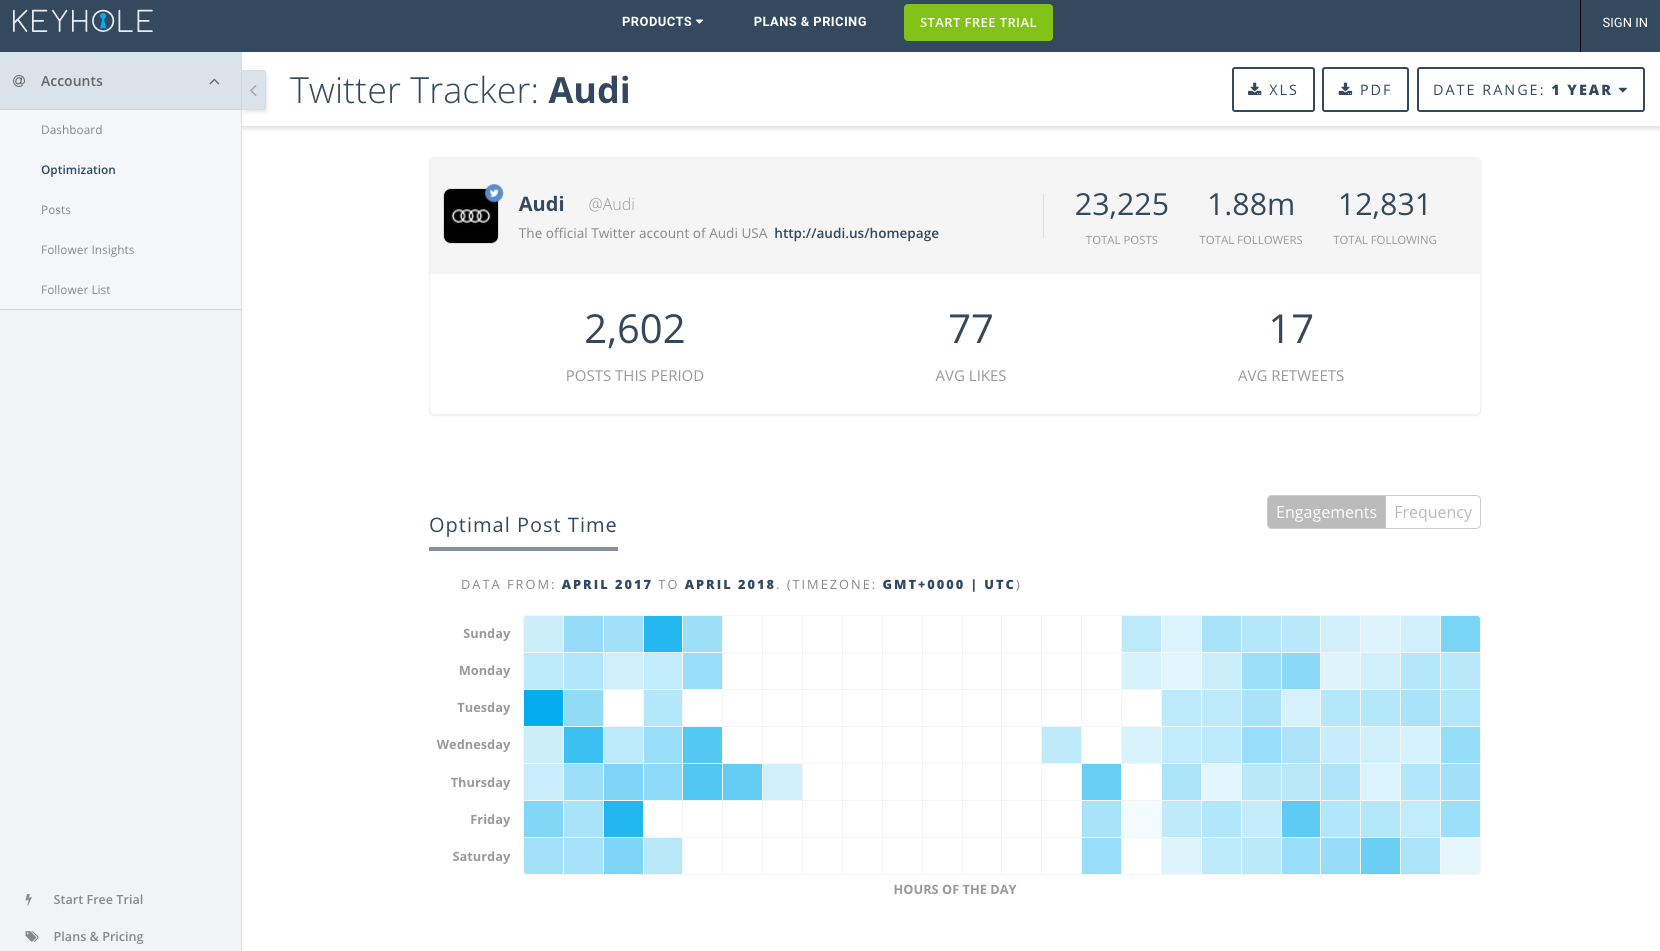 keyhole report  9 of the Best Twitter Analytics Tools of 2018 keyhole